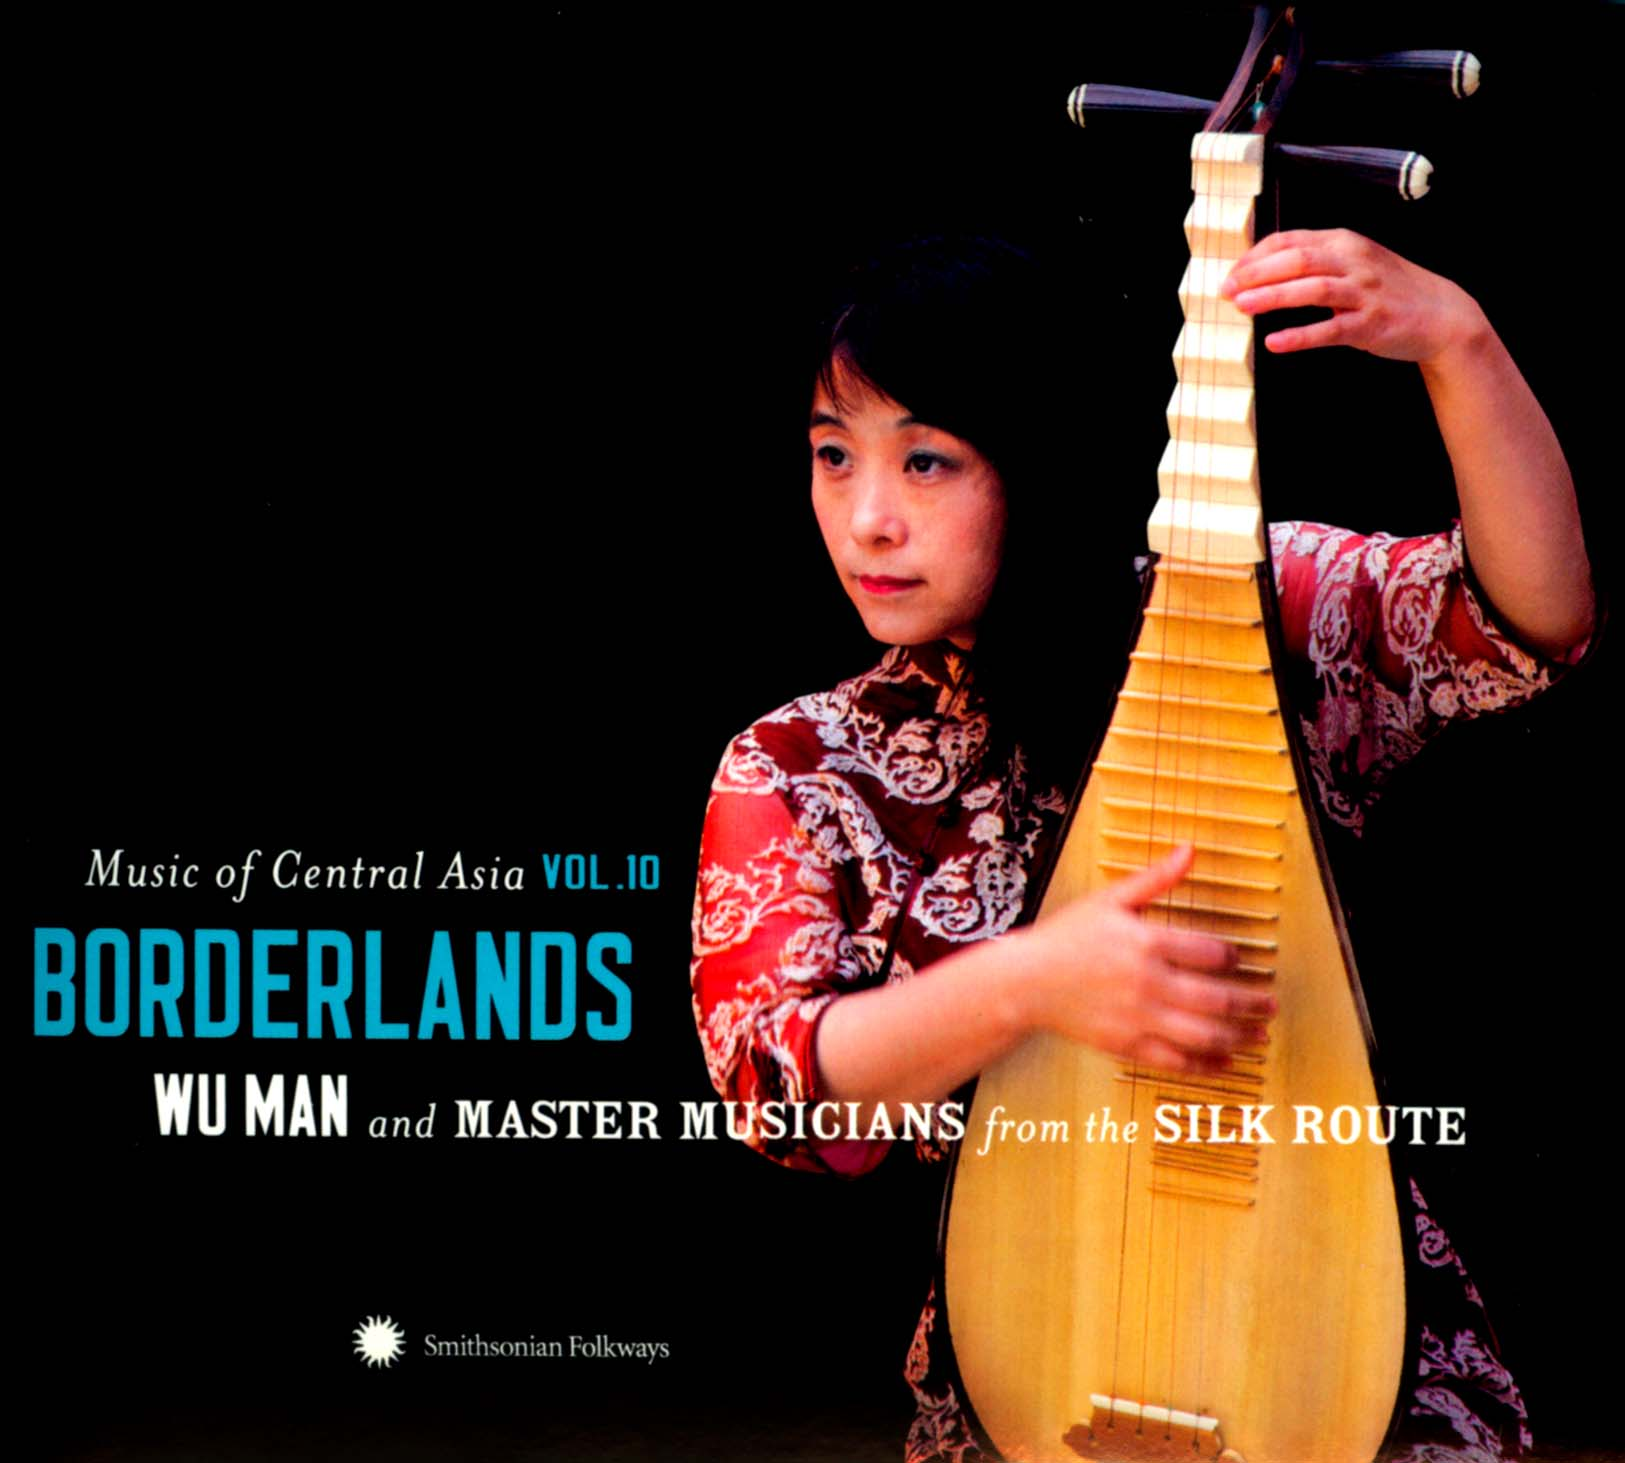 Borderlands: Wu Man and Master Musicians from the Silk Route